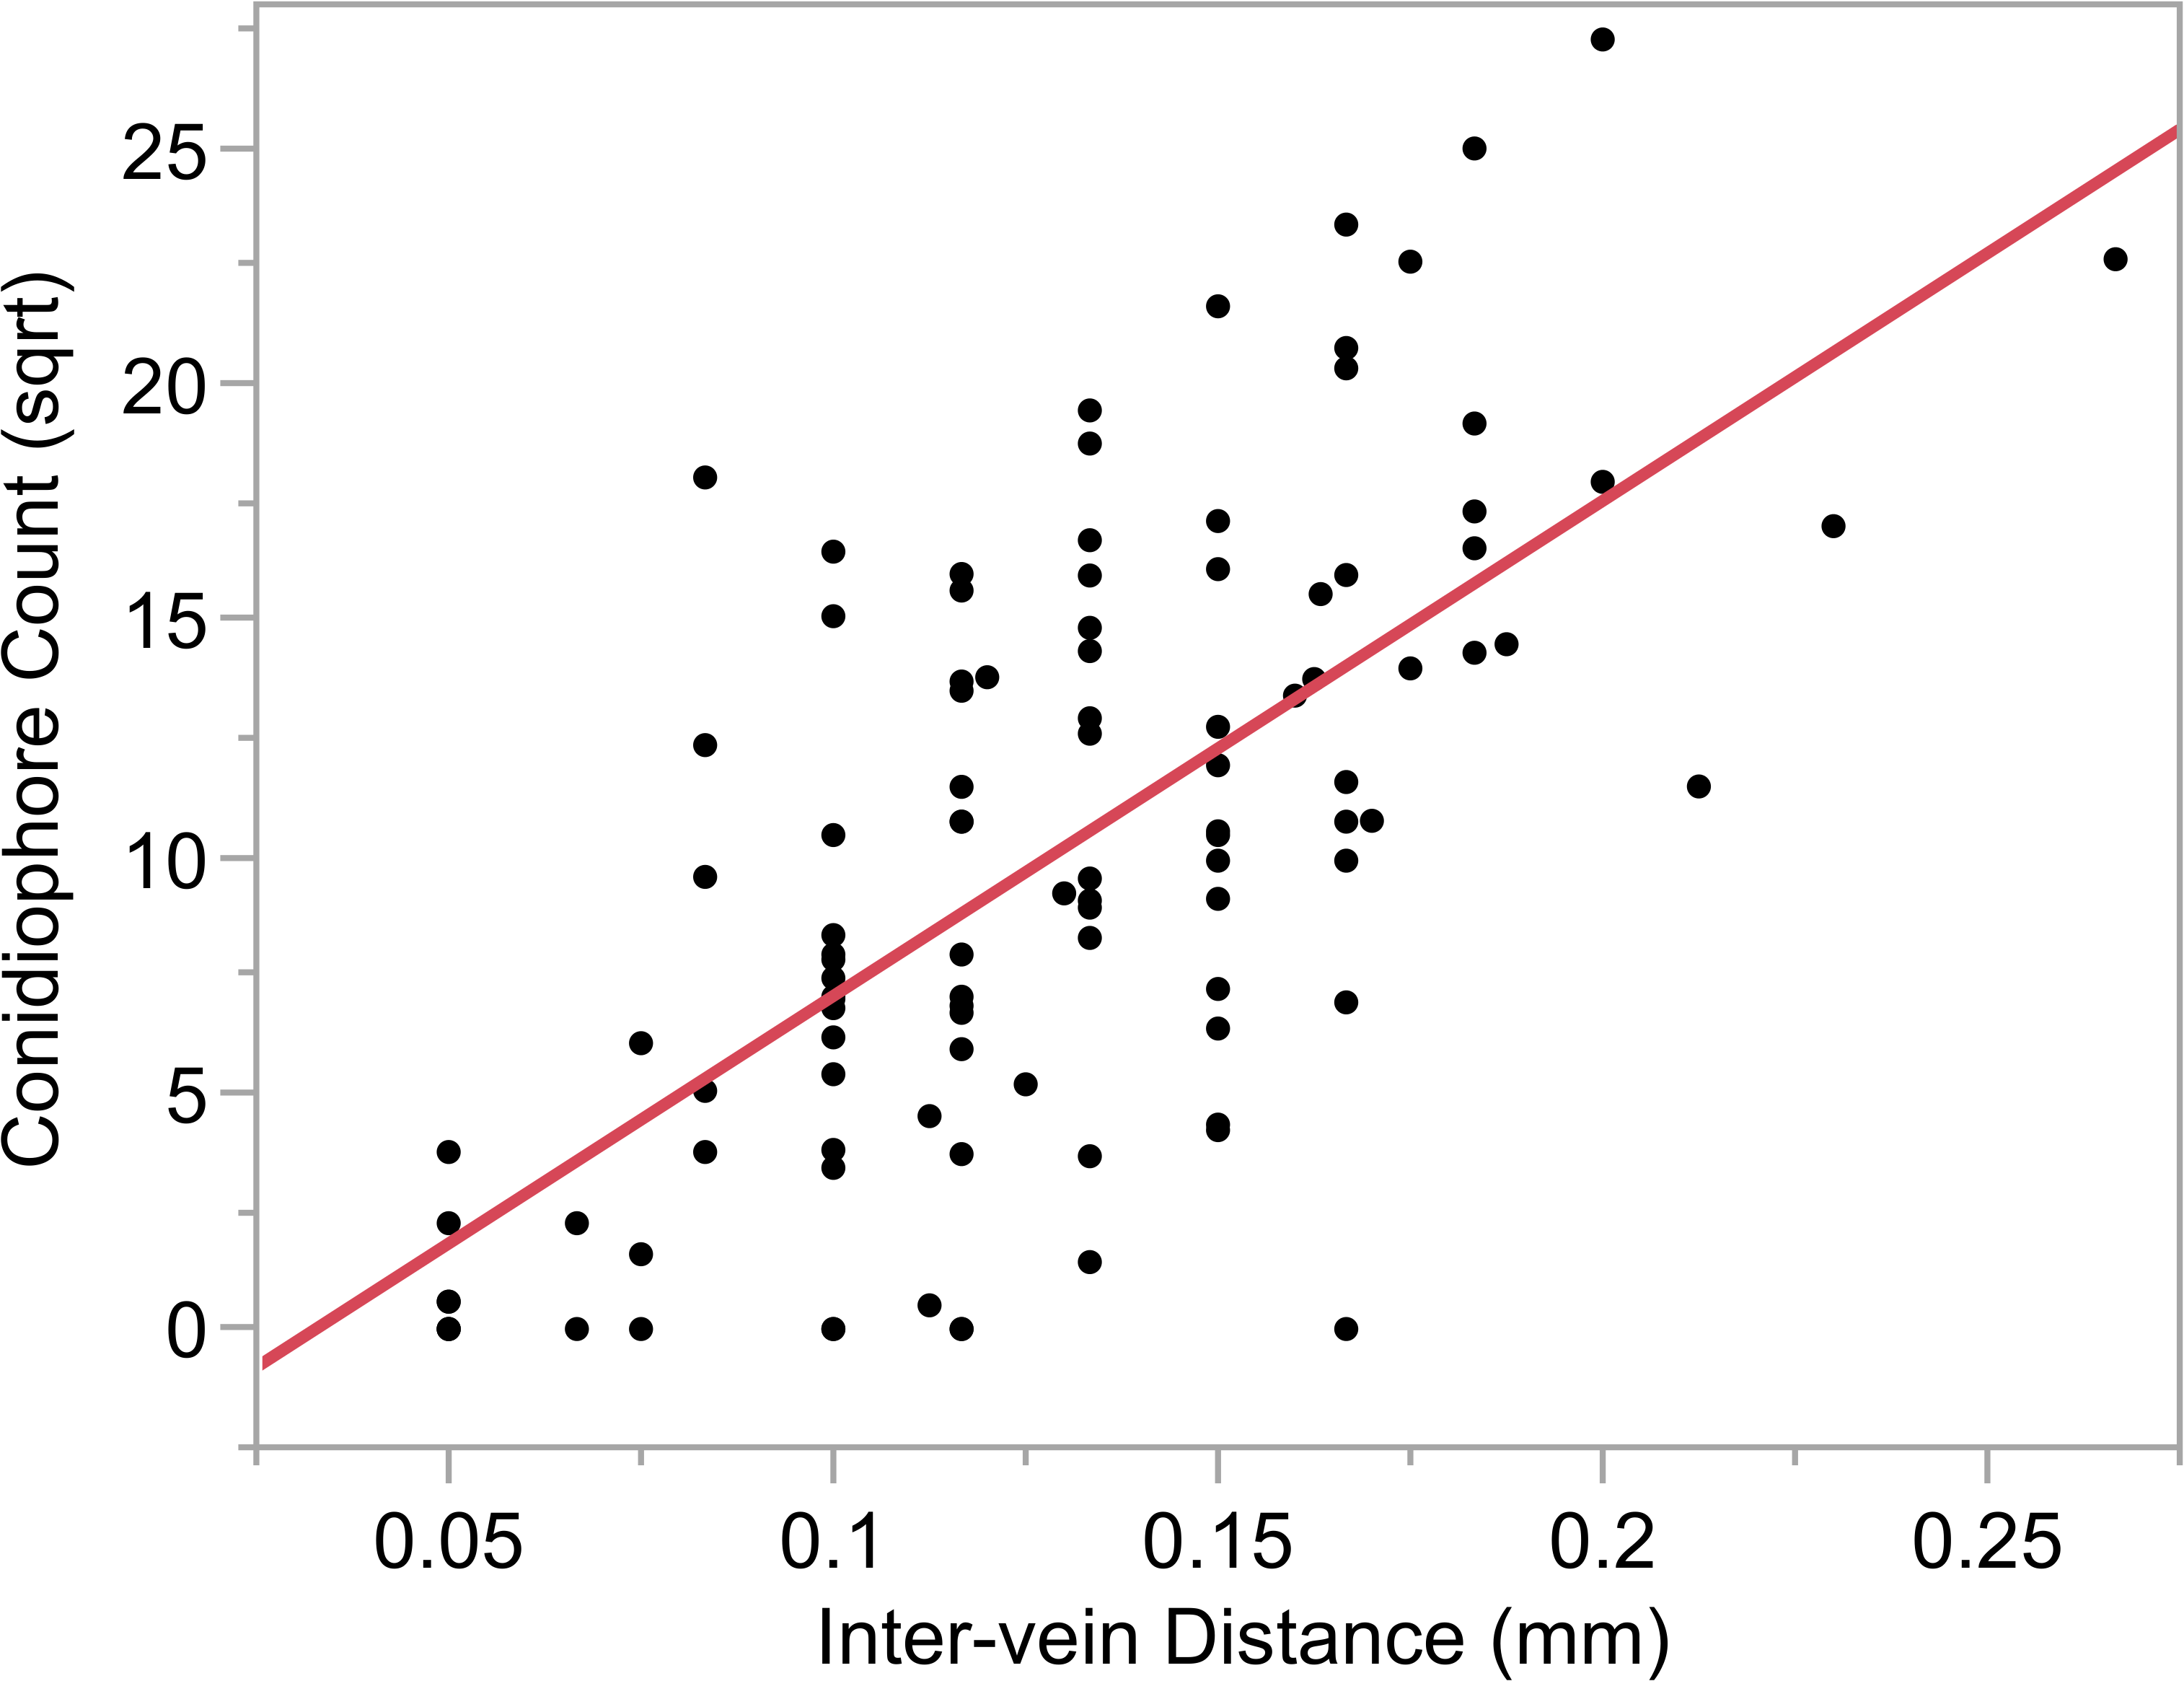 Relationship between conidiophore count and intervein distance.